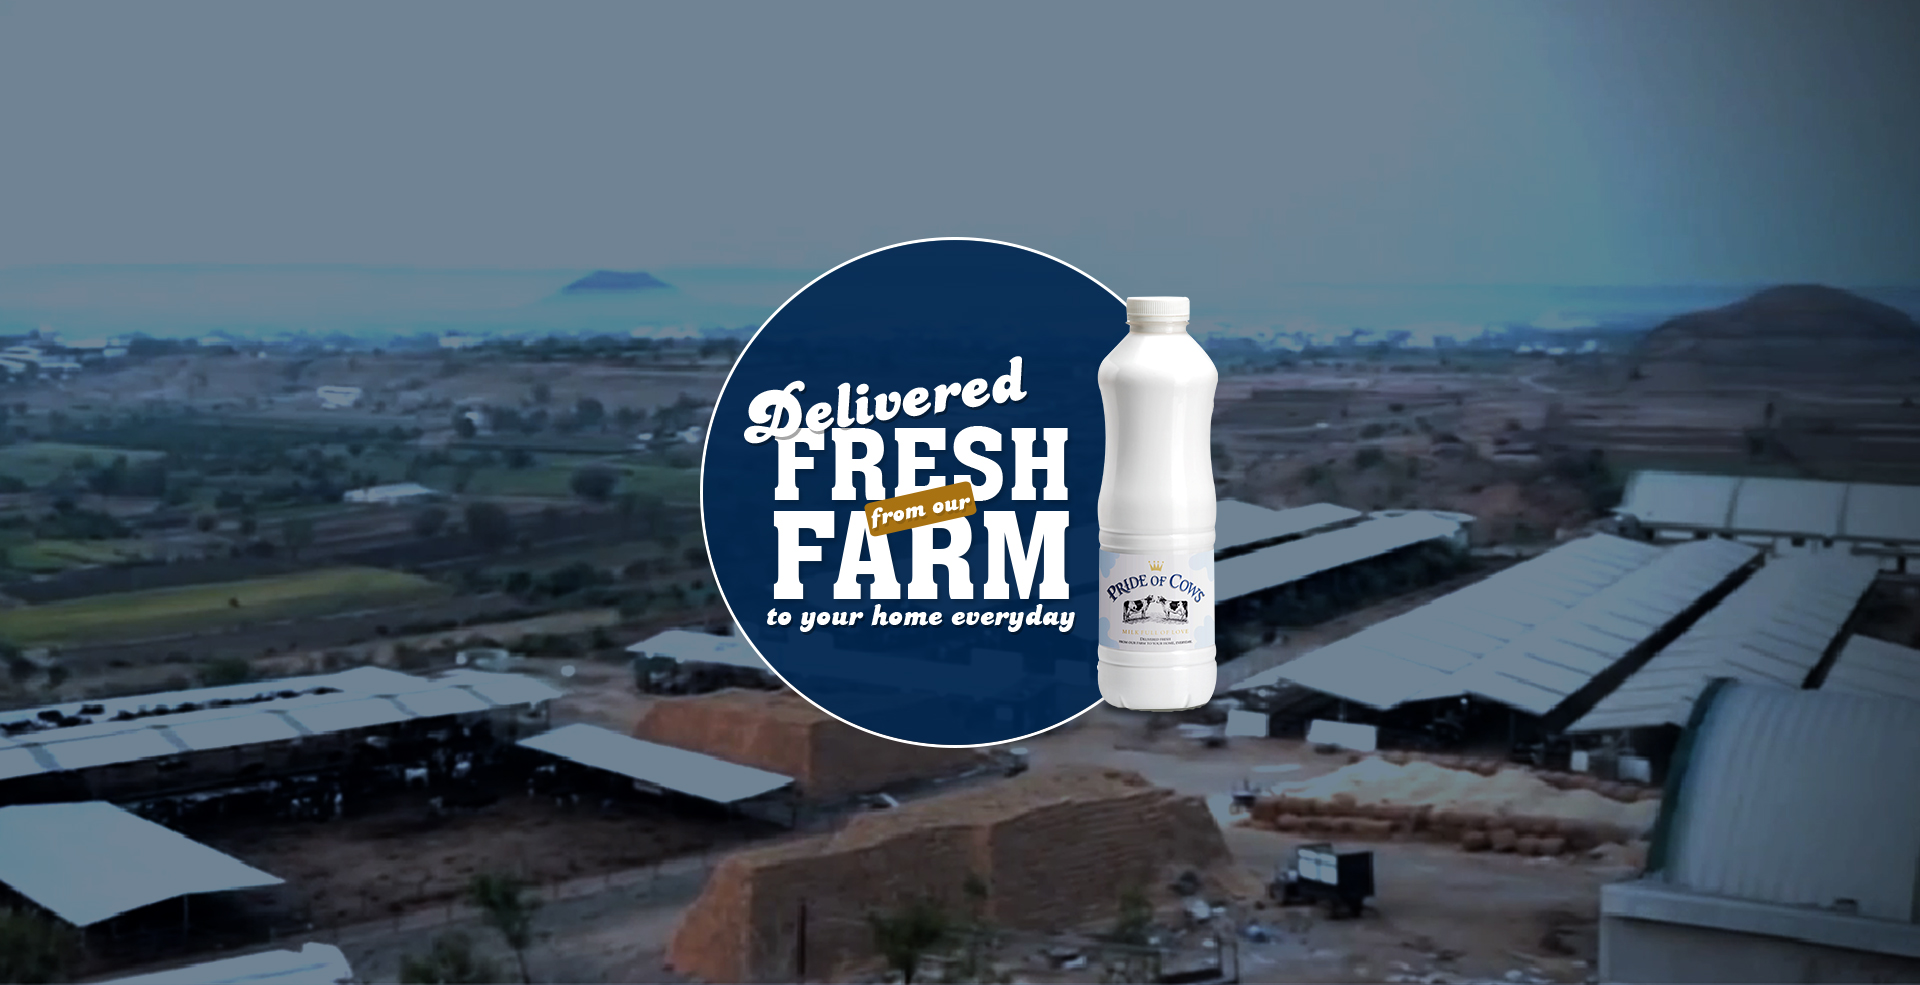 Farm to Home 100% Cow milk Manufacturer and Supplier – Pride of Cows